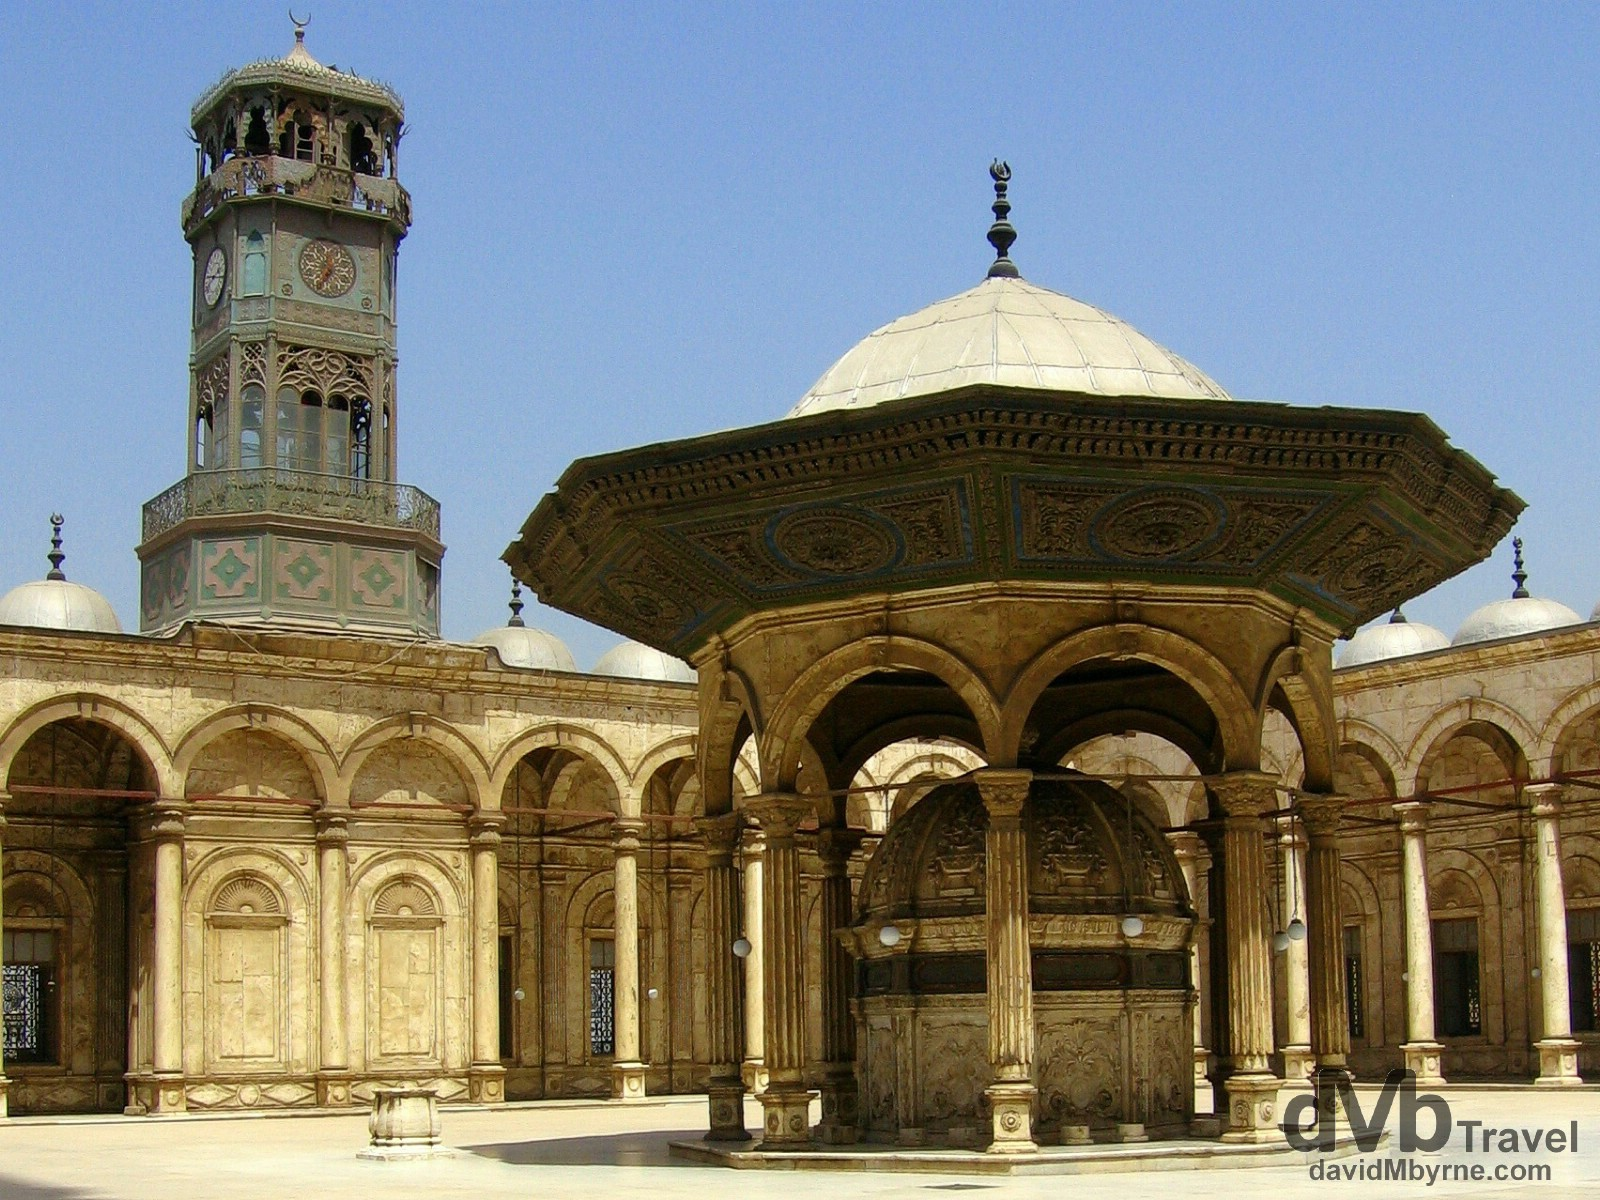 The marble-heavy external courtyard of the Muhammad Ali Mosque of the Saladin Citadel in Cairo, Egypt. April 14, 2008.